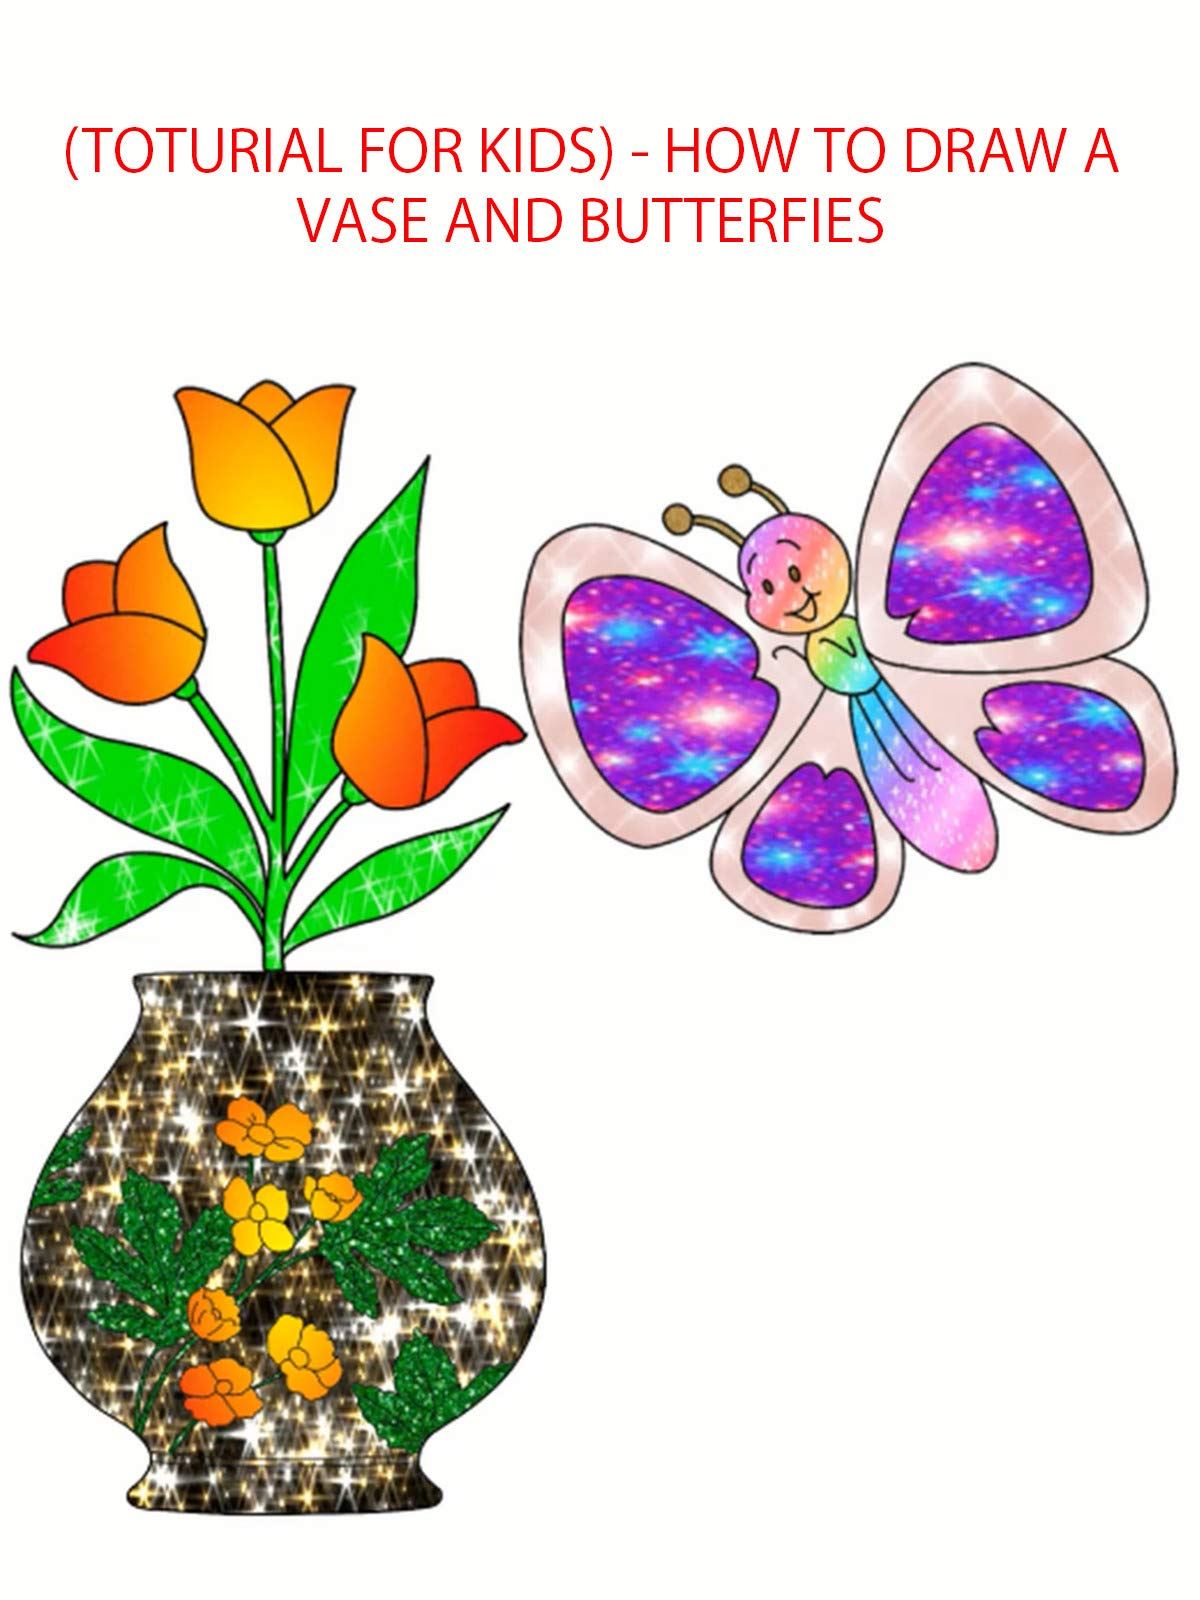 (toturial for kids) - how to draw a vase and butterflies